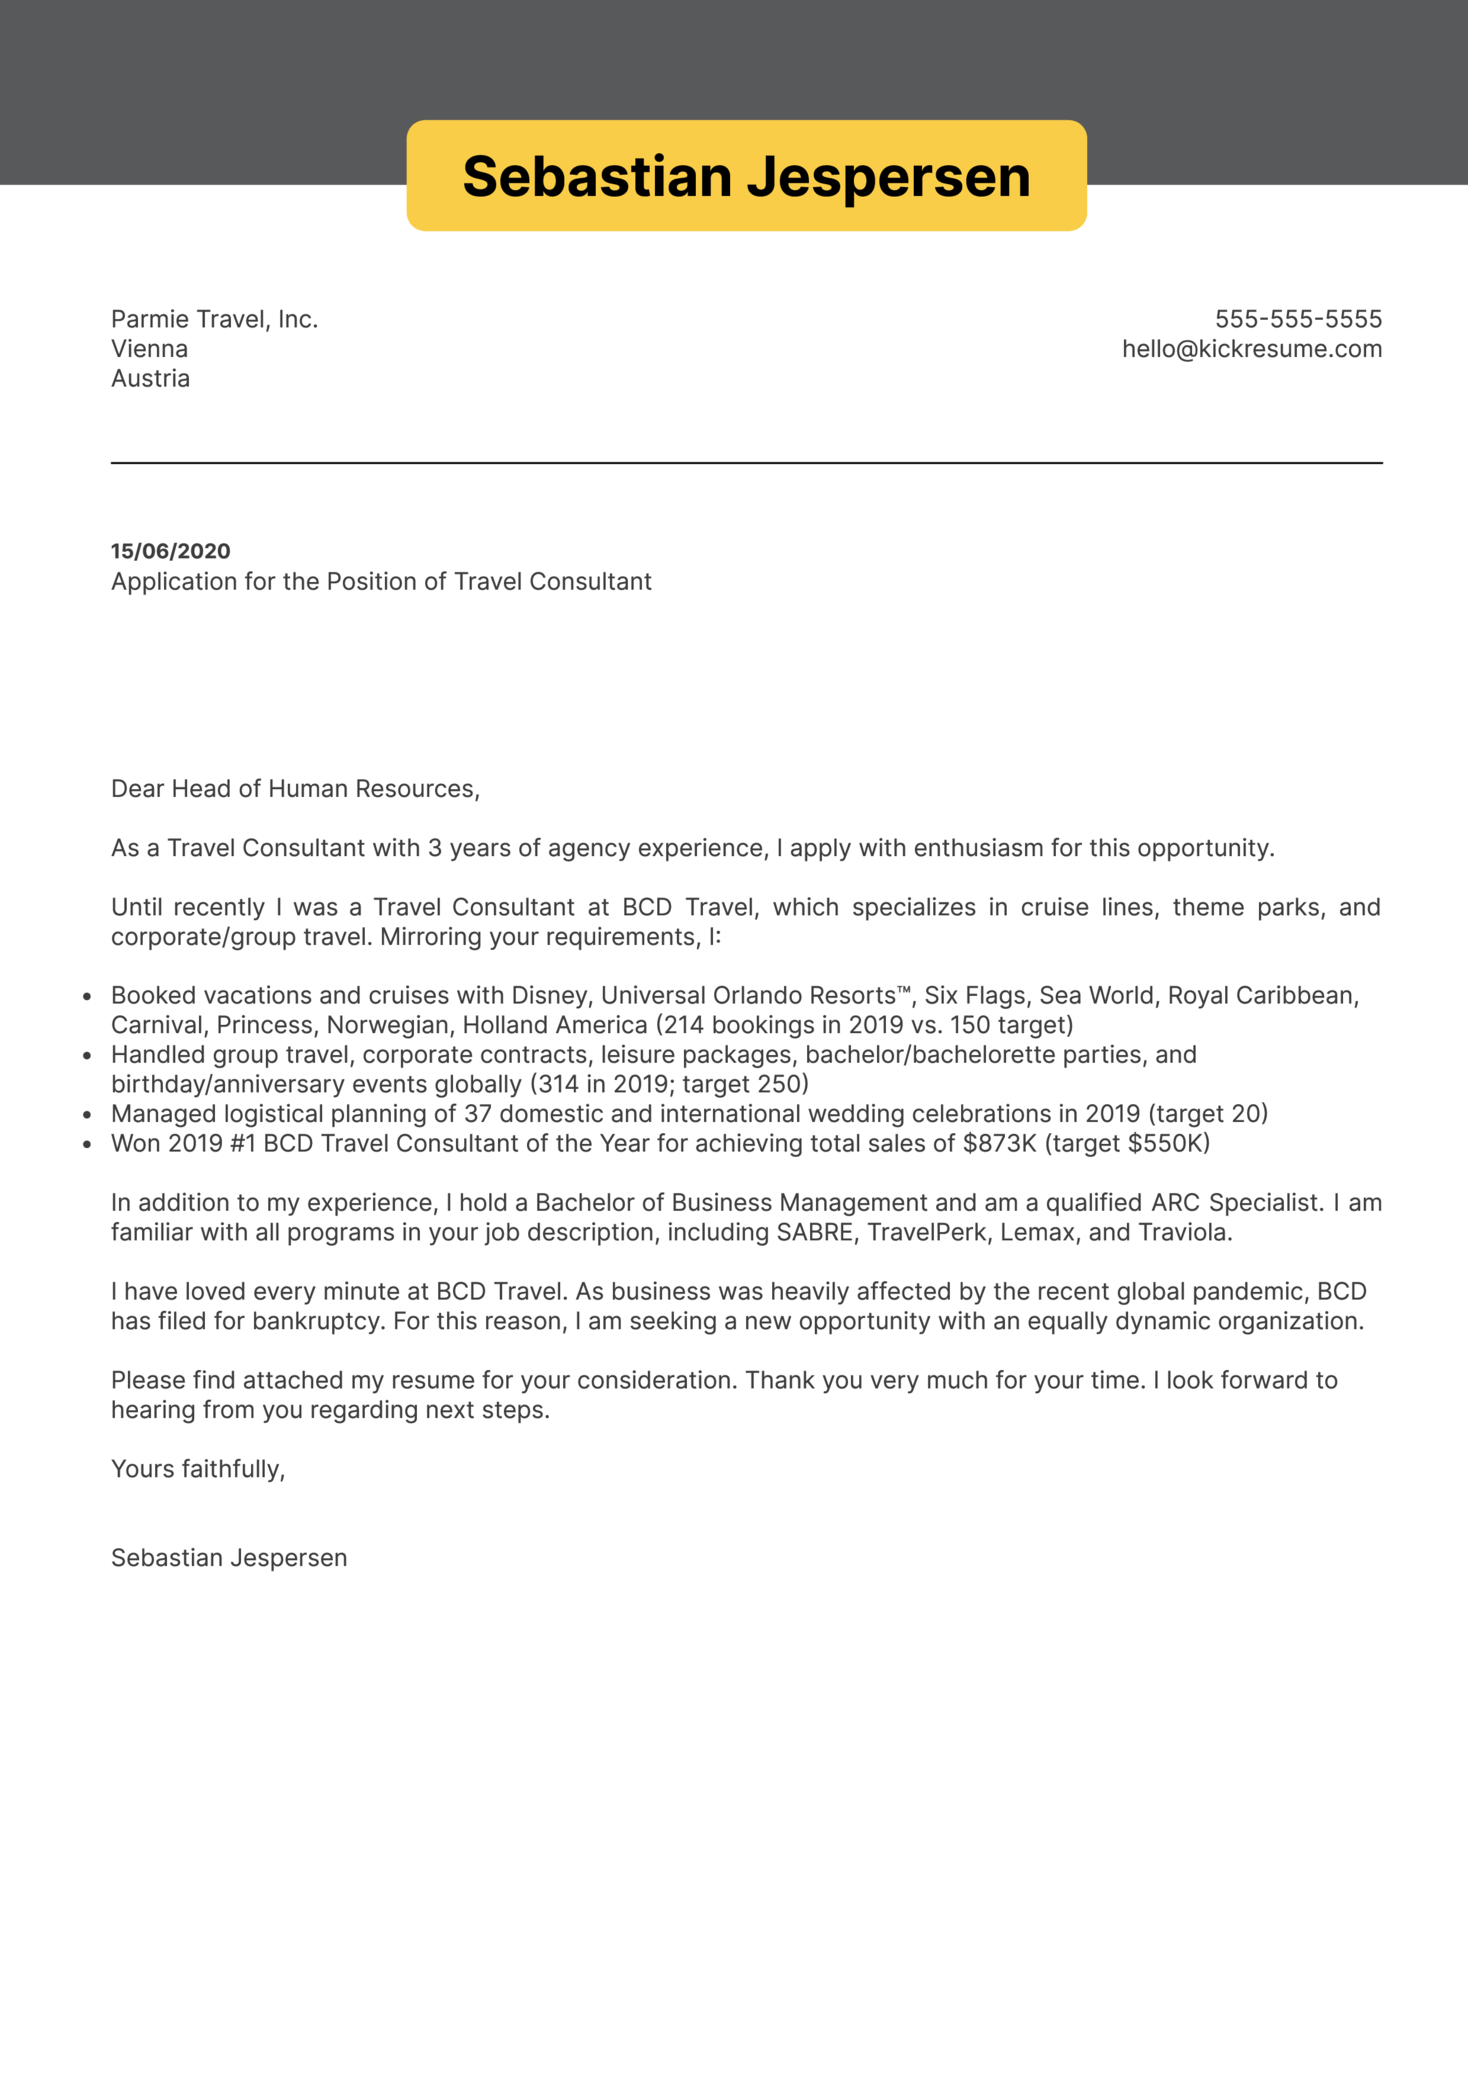 Corporate traveler cover letter hobbies and interests in resume